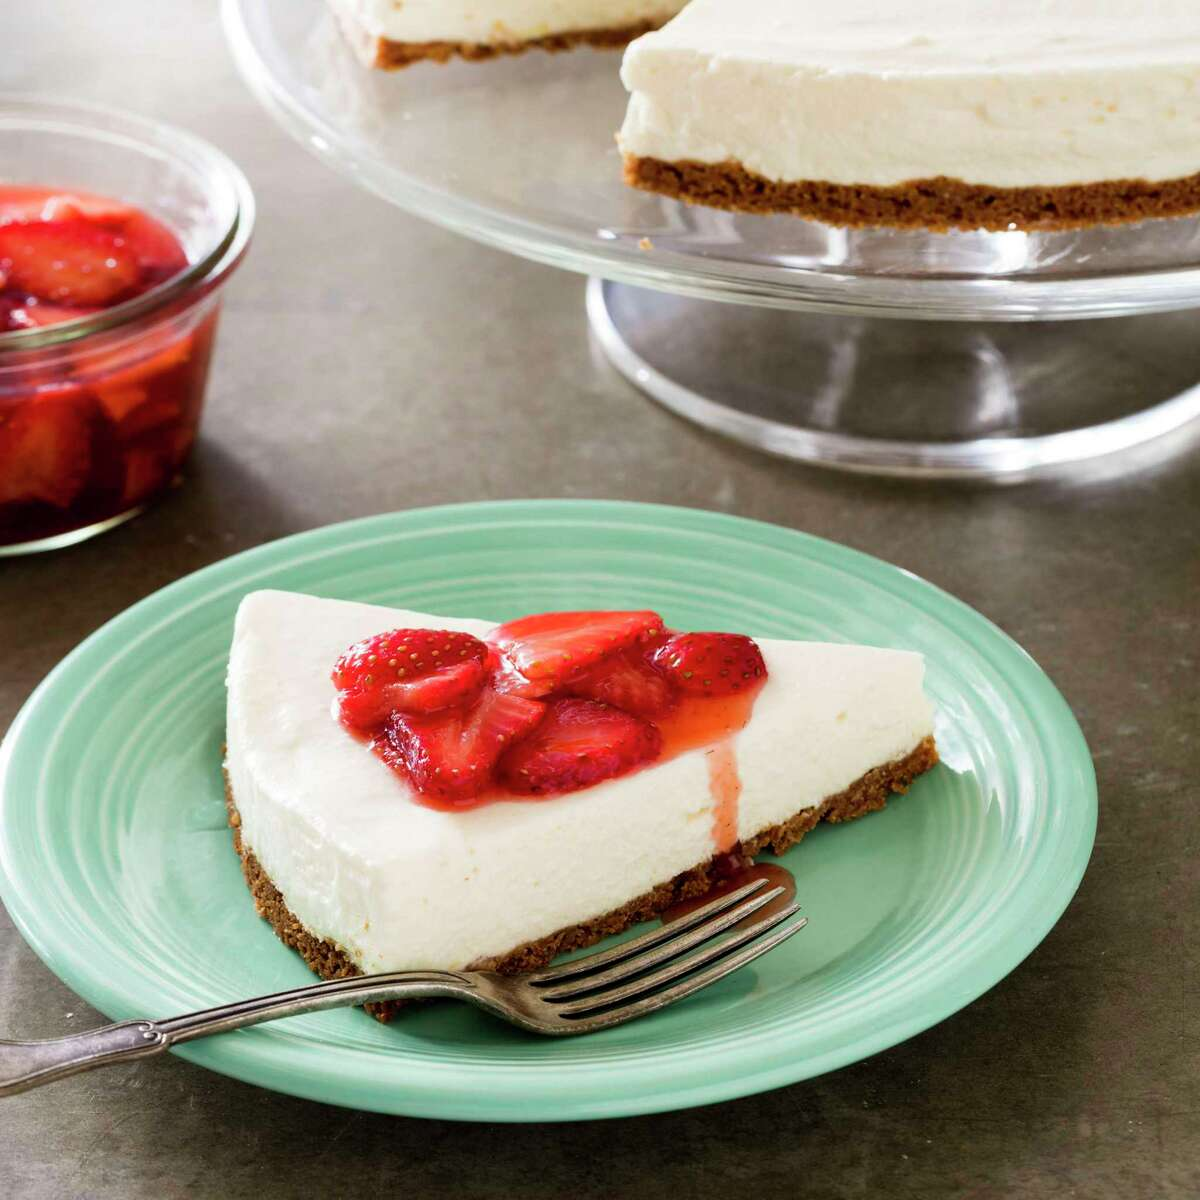 Dairy desserts like cheesecake and blintzes are a popular treats for celebrate the Jewish holiday of Shavuot.This is Icebox Cheesecake in Brookline, Mass. This recipe appears in the cookbook Perfect Cake. (Daniel J. van Ackere/America's Test Kitchen via AP)